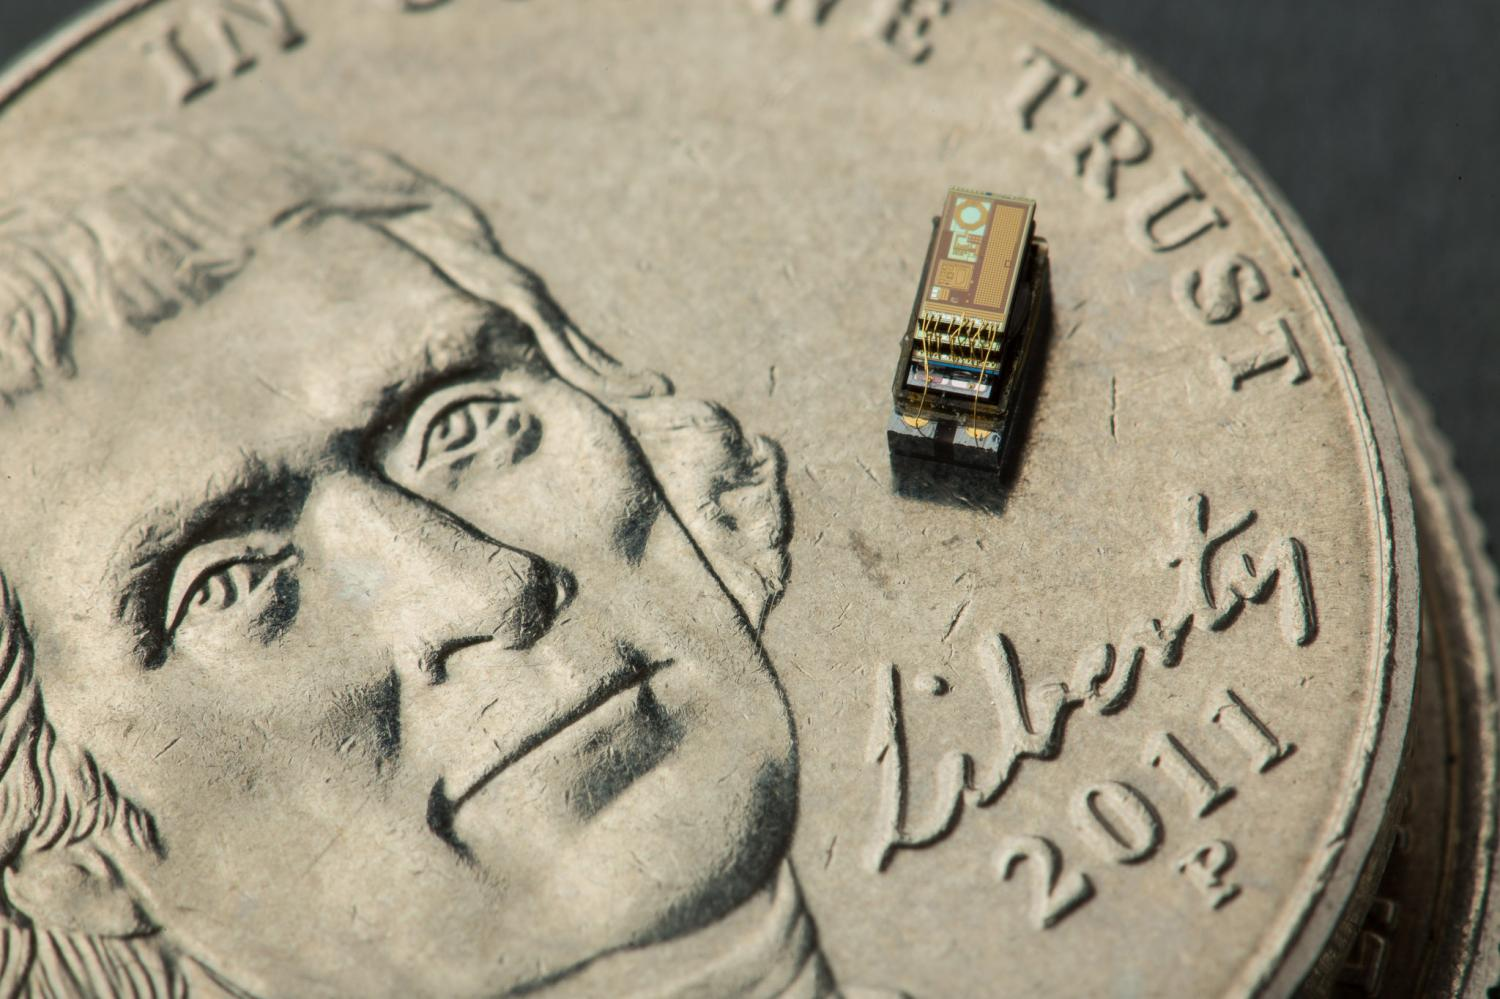 michigan-micro-mote-worlds-smallest-computer.jpg